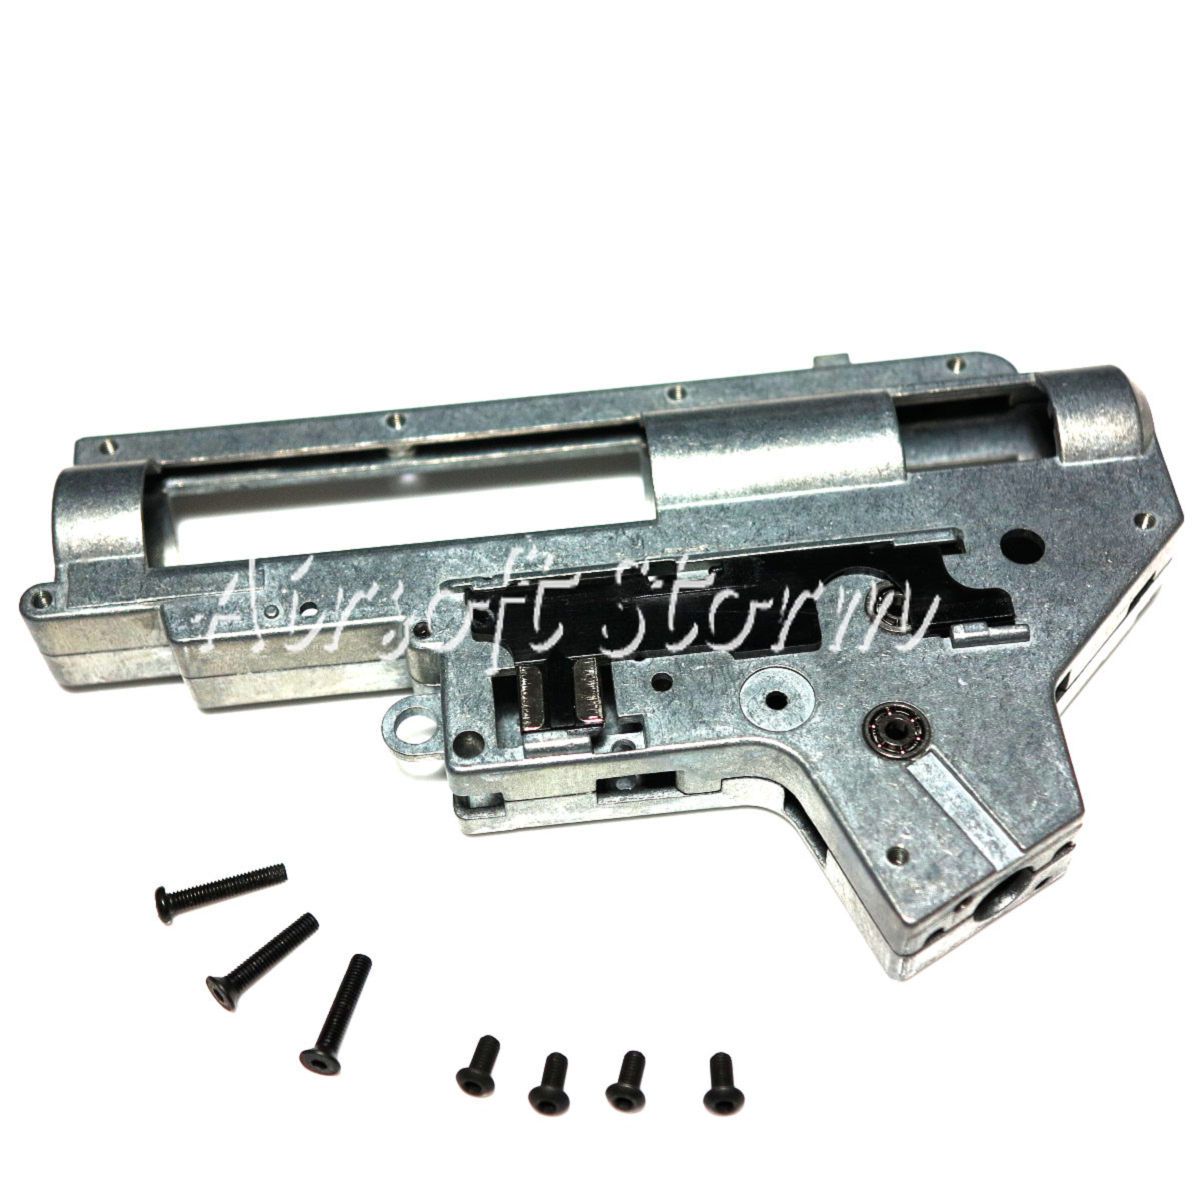 Shooting Gear Action 8mm Bearing AEG M4 Reinforced Gearbox Shell Version 2